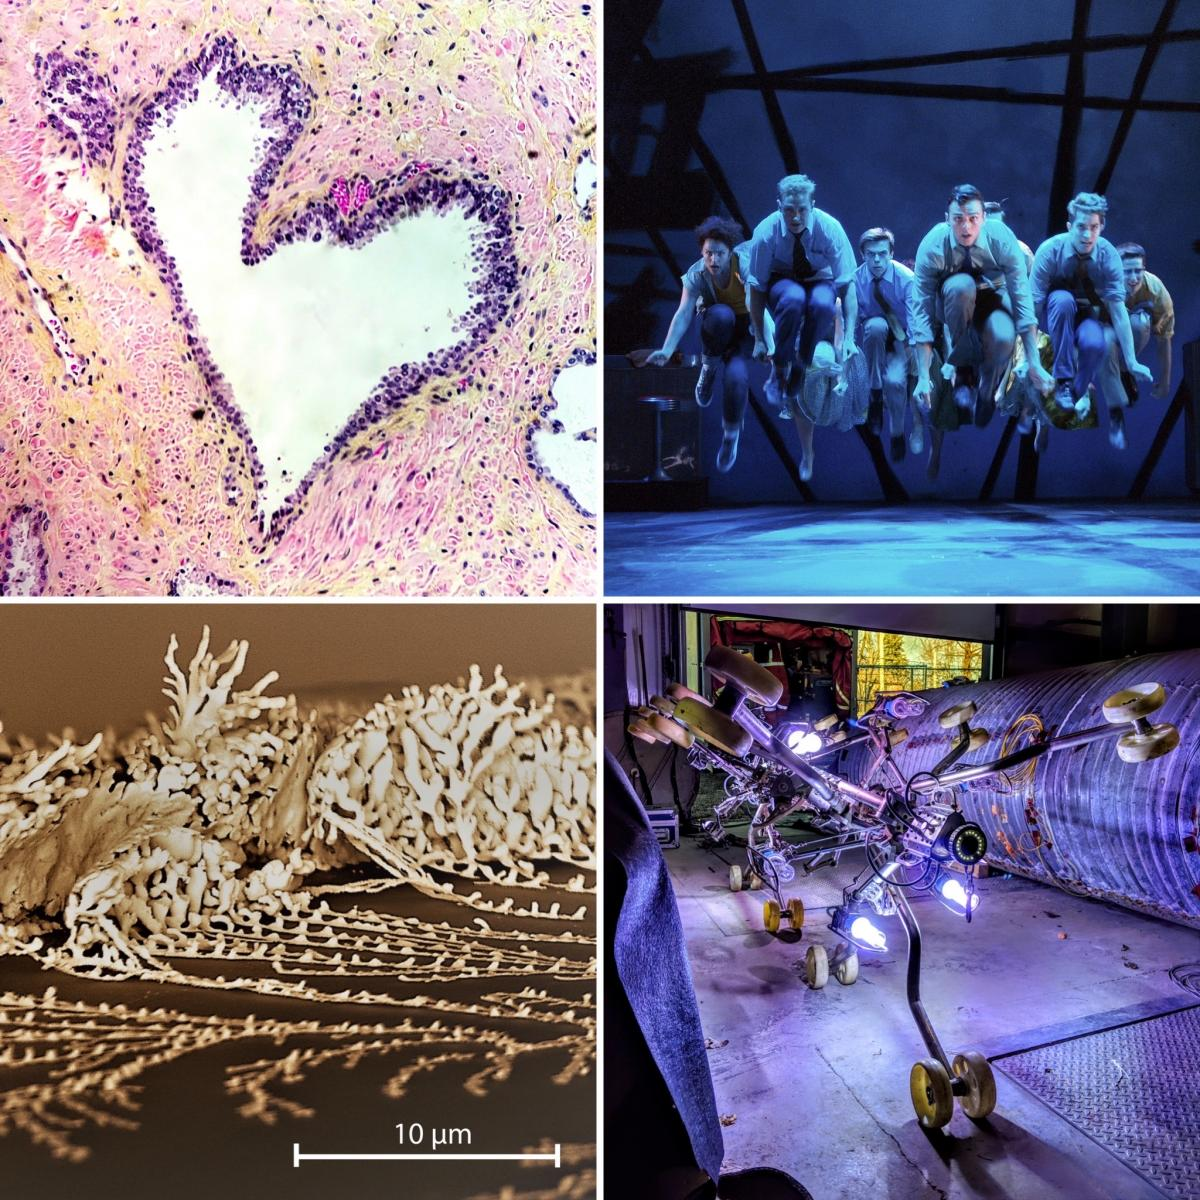 [4 winning images from the 2019 Art of Research photo contest]